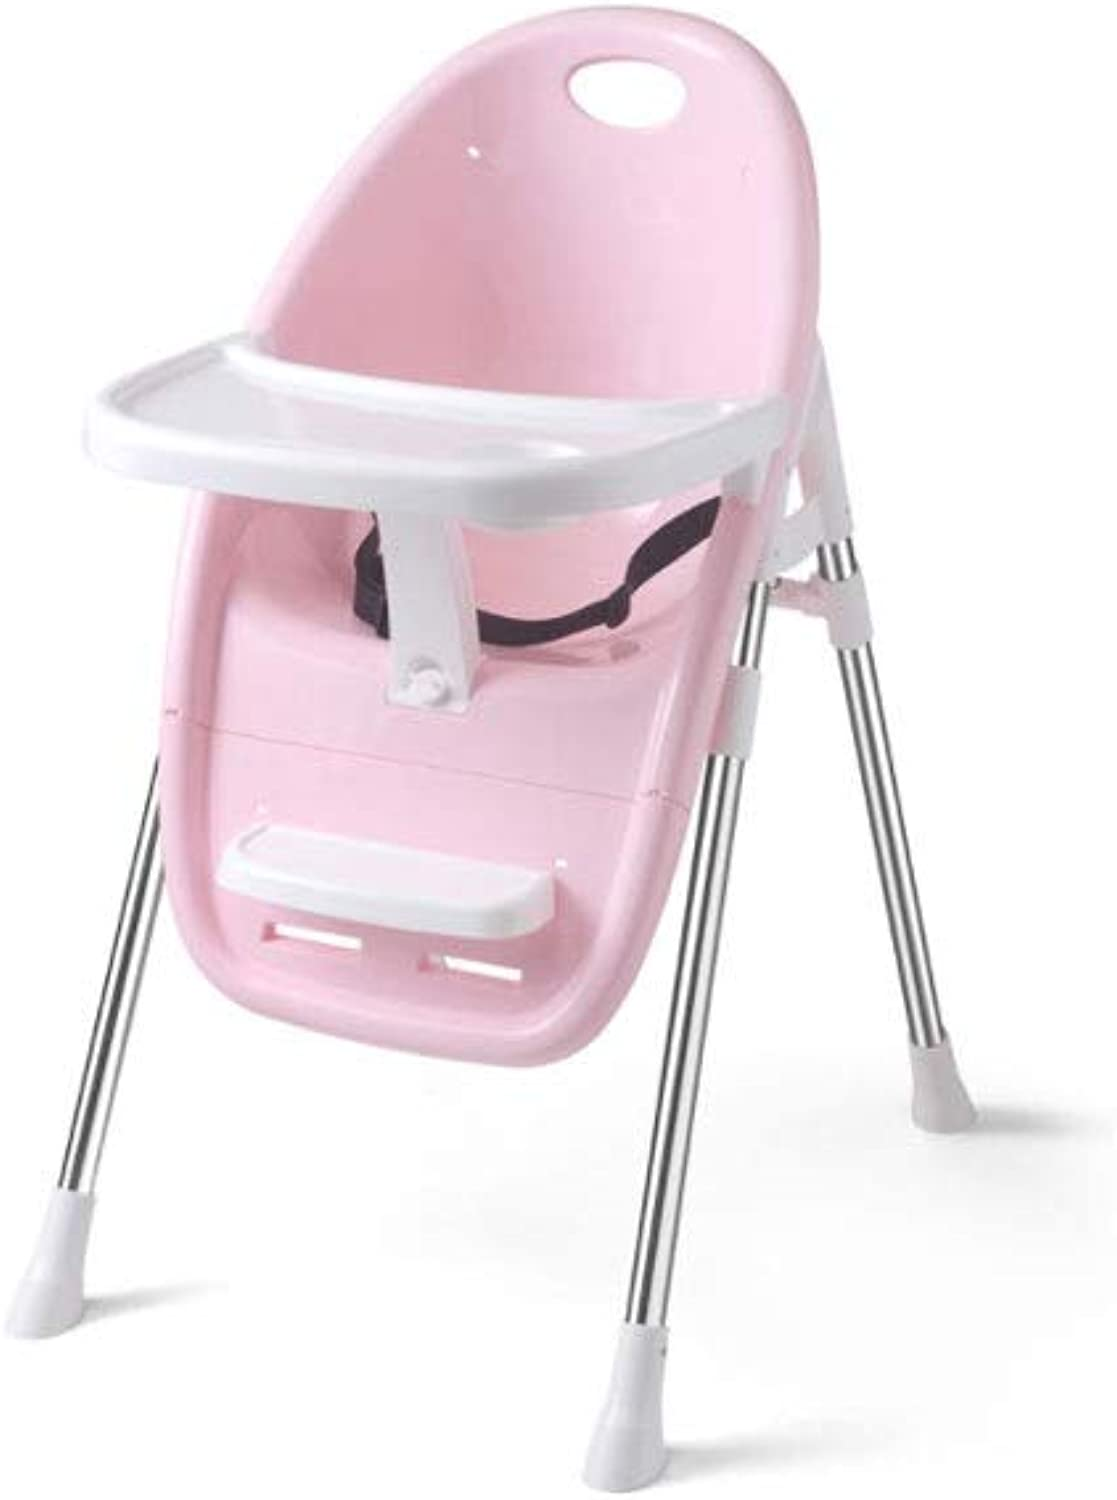 Baby Dining Chair Sleek Minimalist Comfortable Breathable Stable Portable Folding Baby Chair (color   Pink, Size   48  67  89cm)